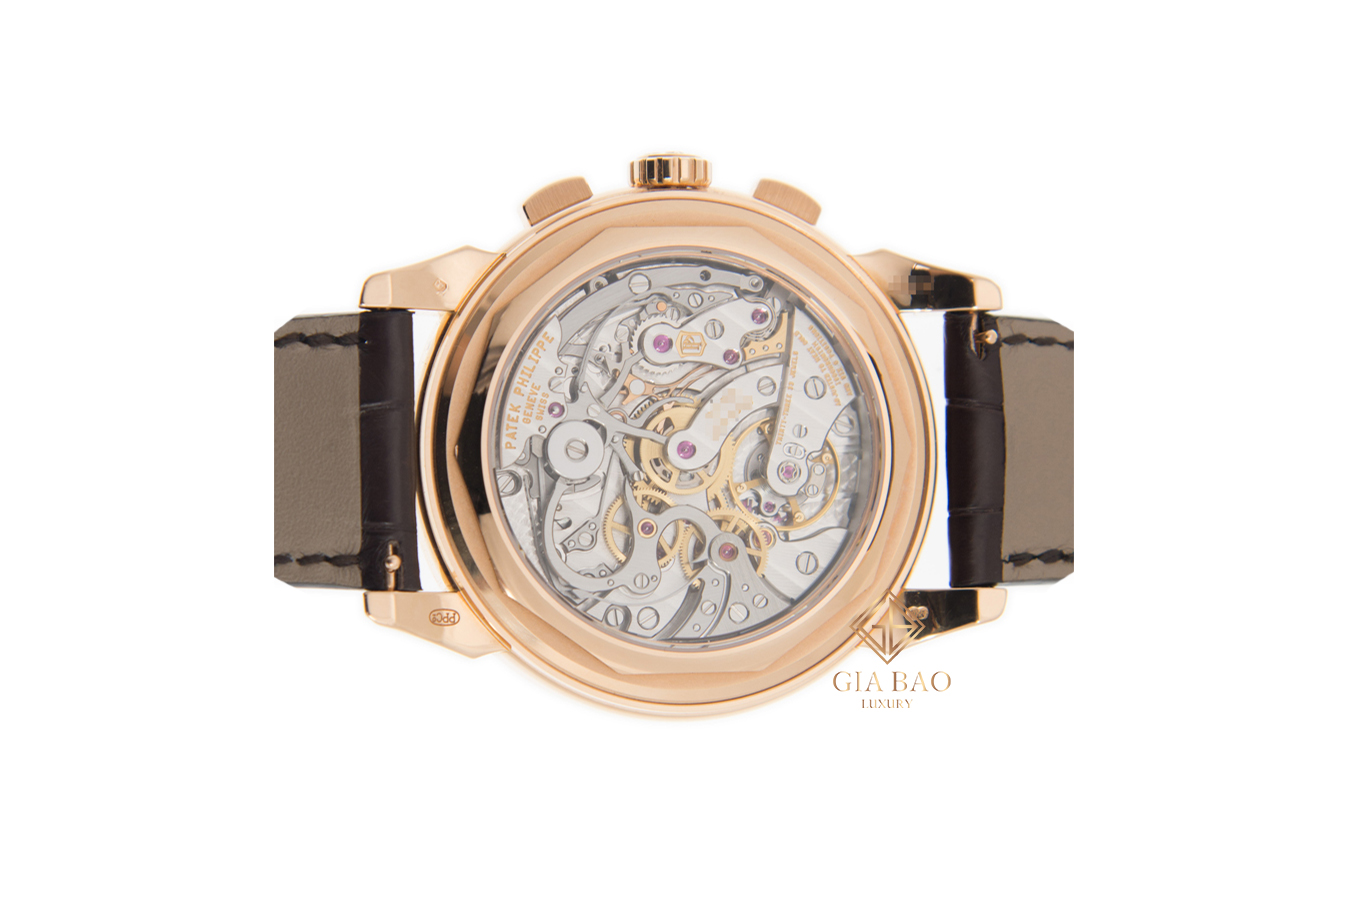 Đồng Hồ Patek Philippe Grand Complications 5270R-001